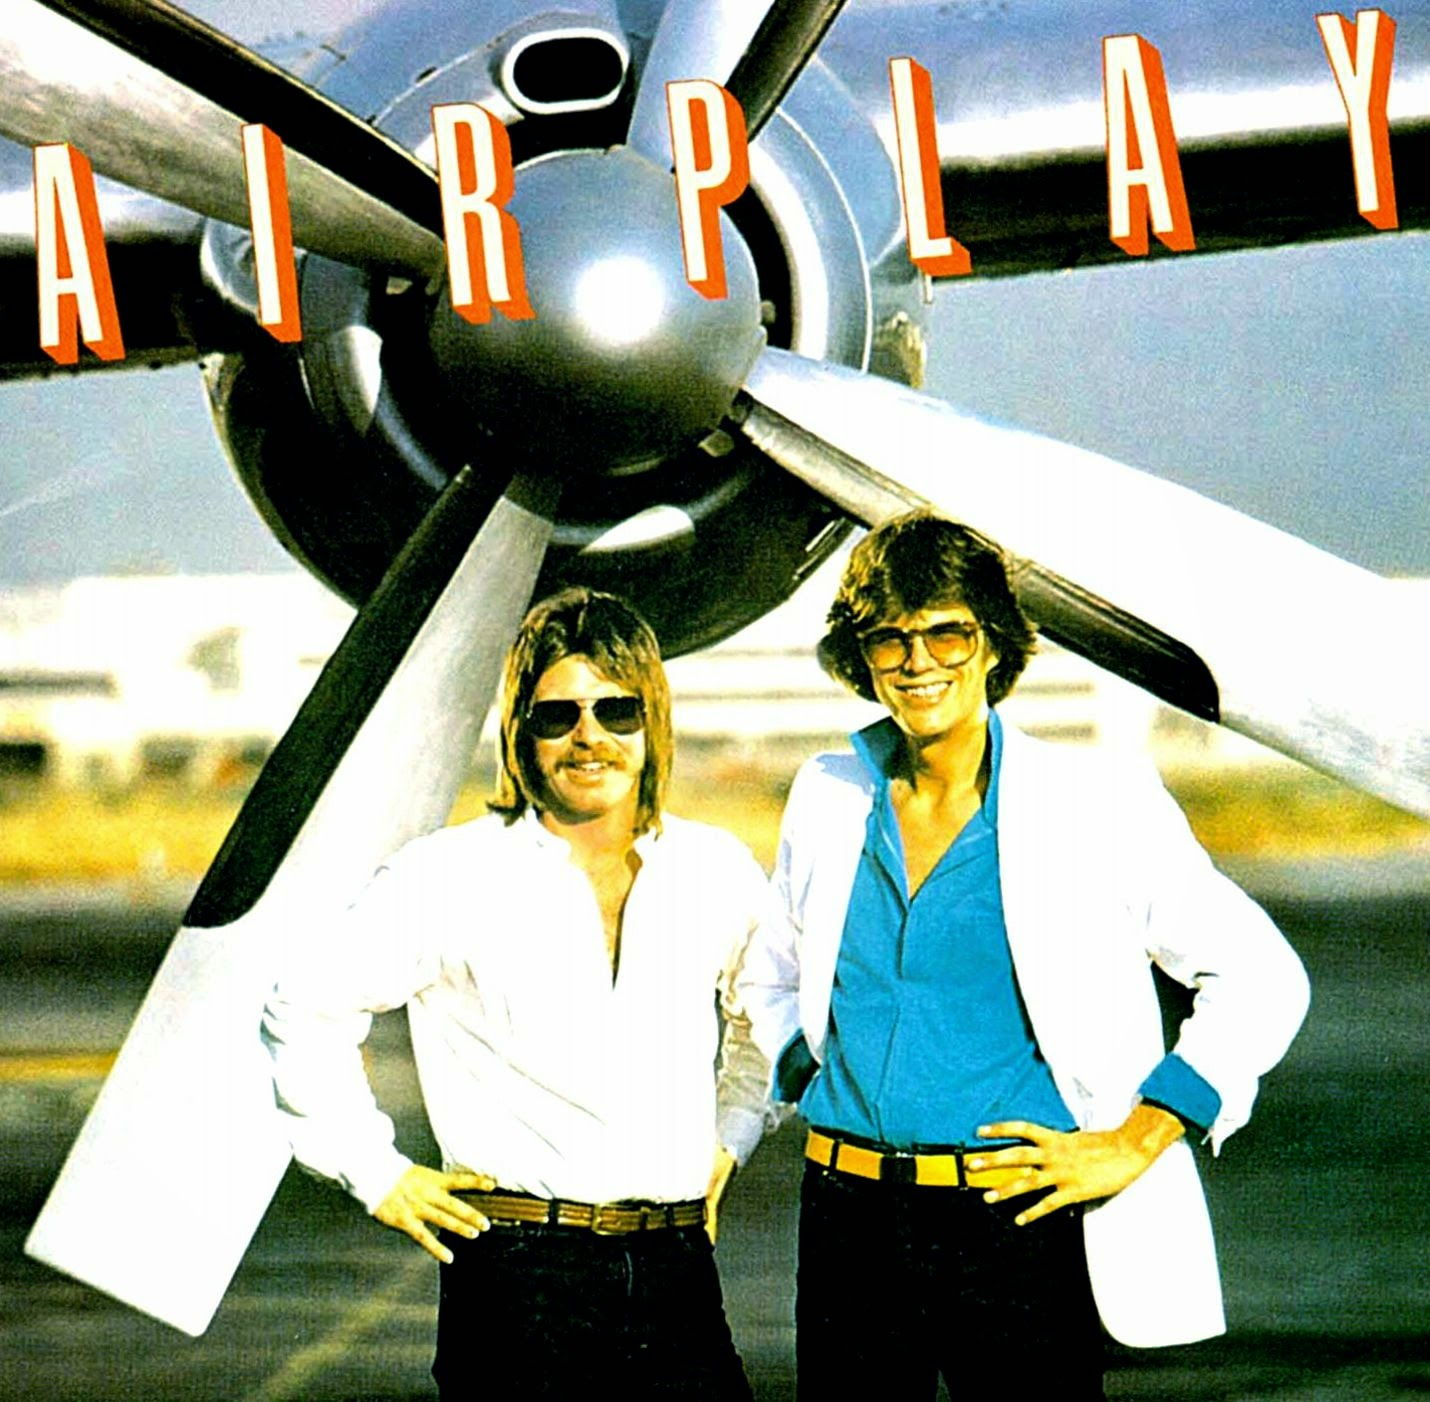 Airplay st 1980 aor melodic rock wescoast